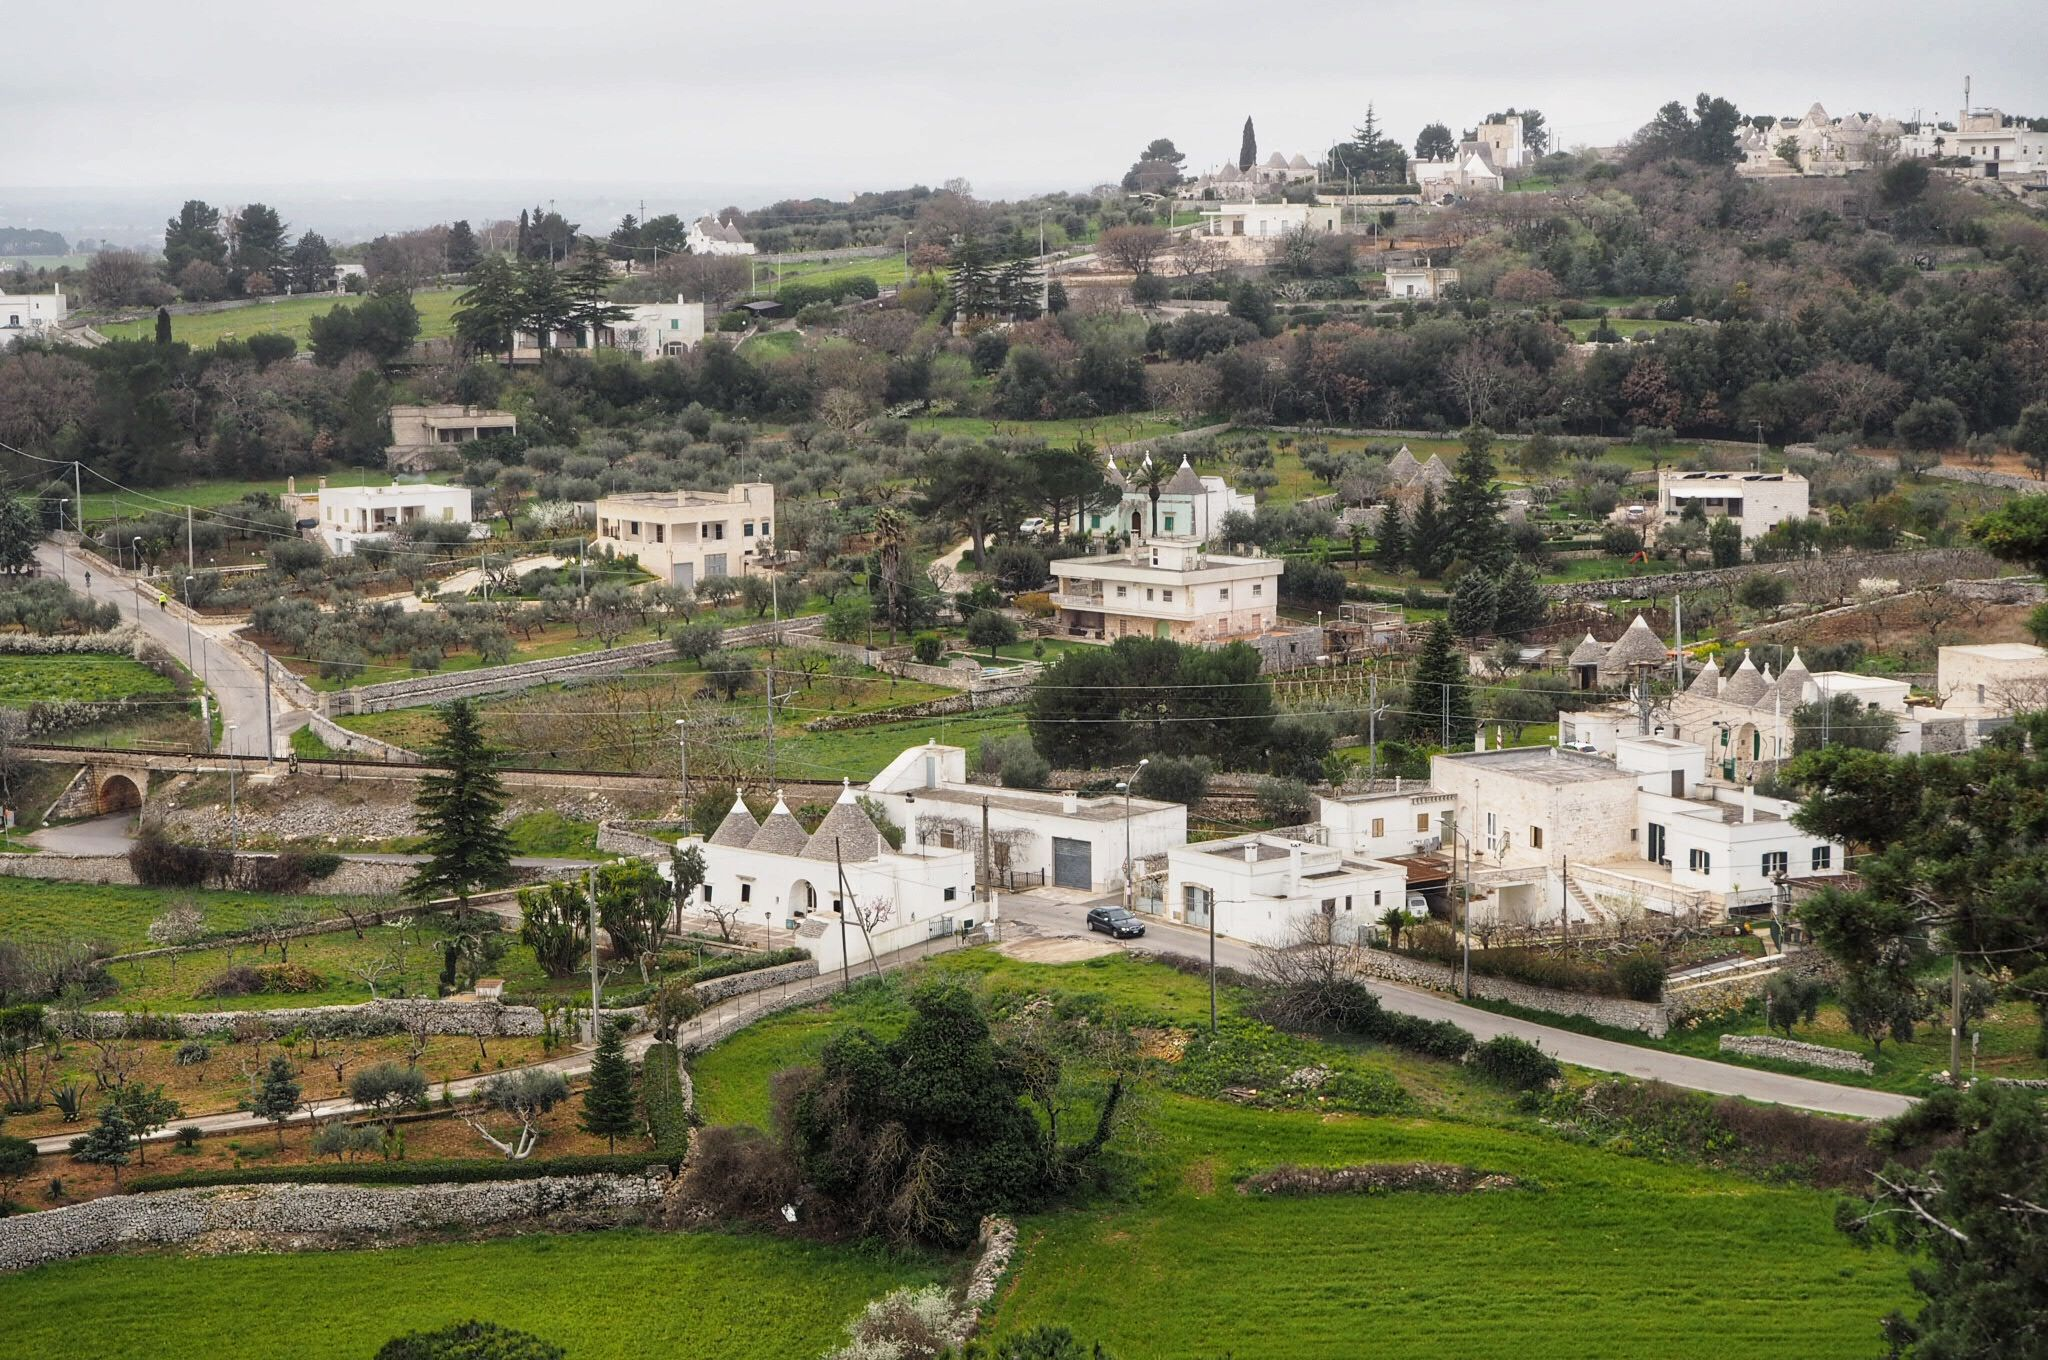 Hillside views of Locorotondo